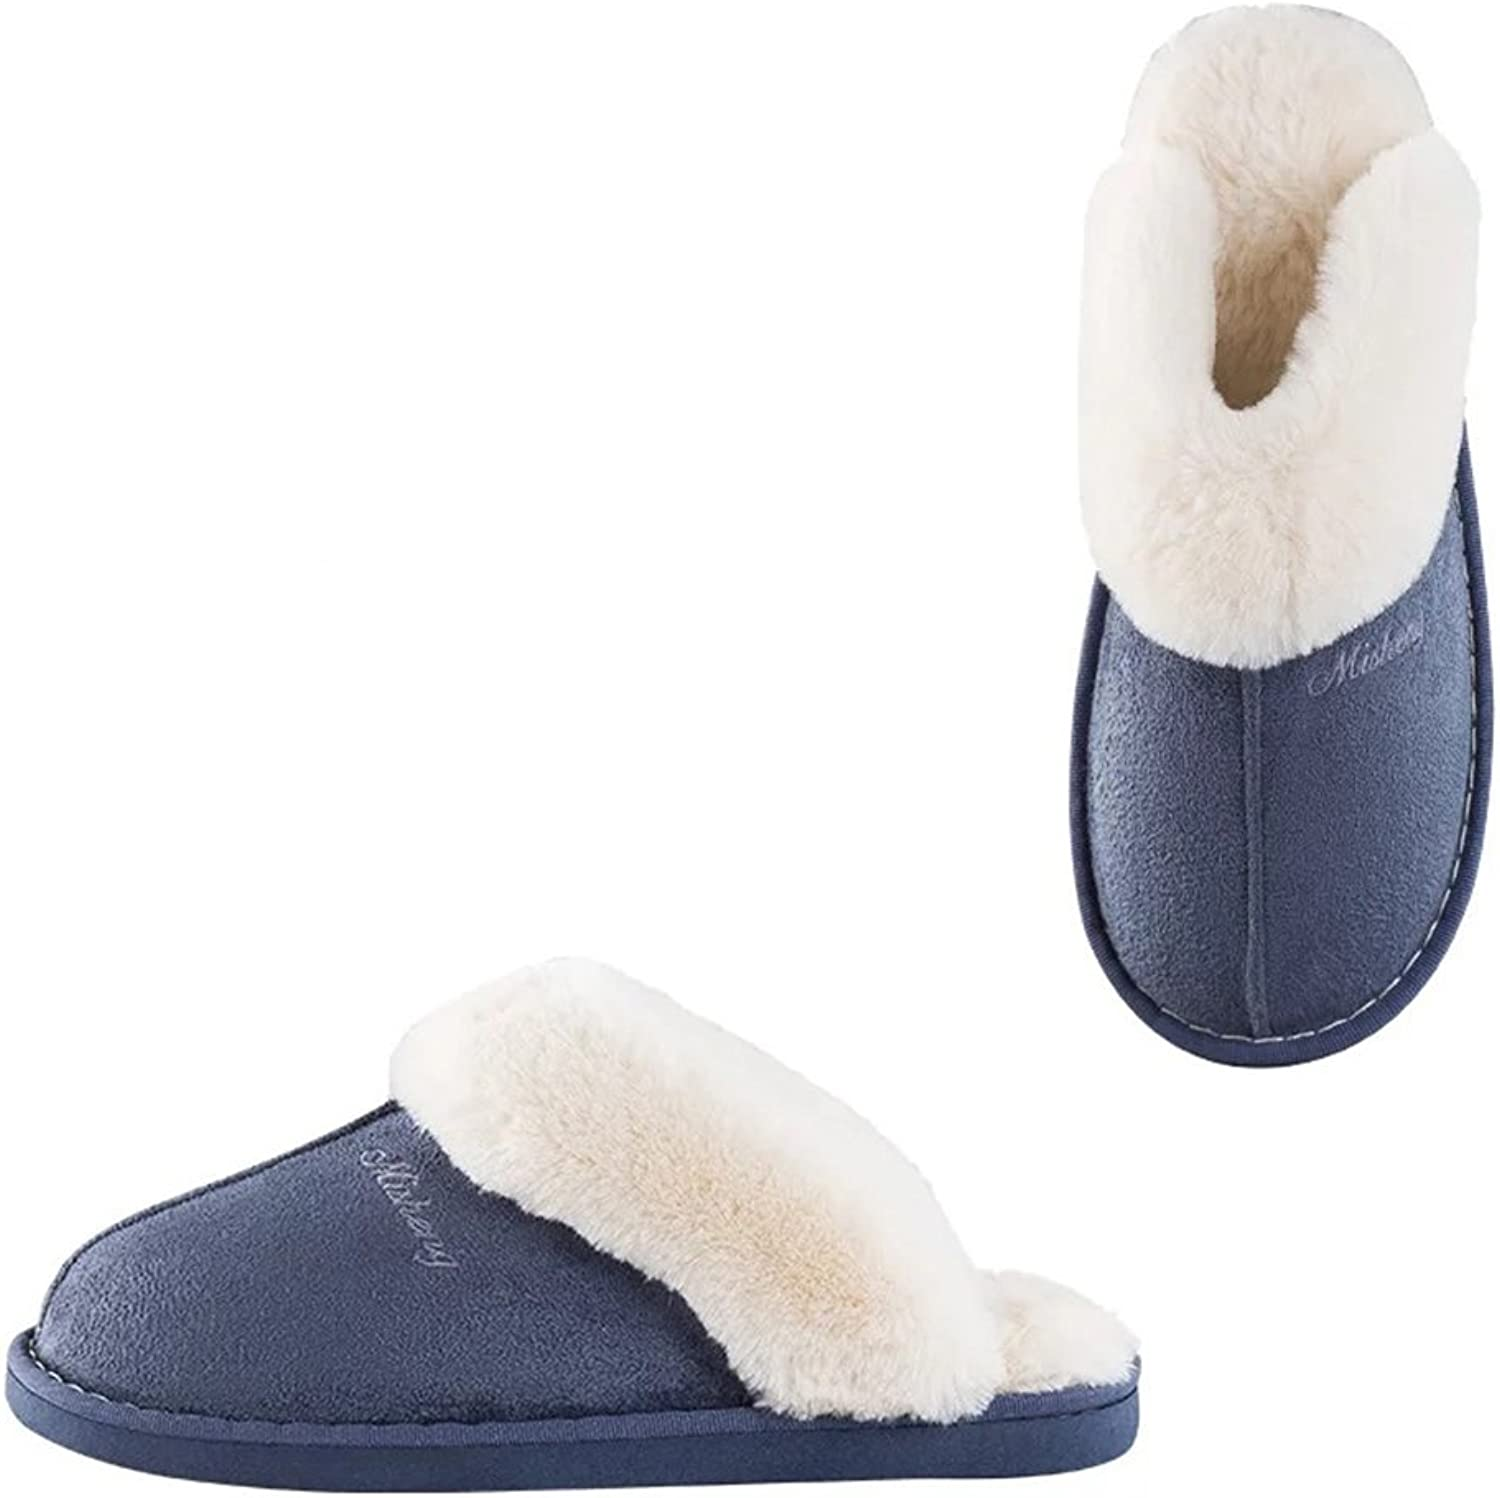 Misolin Womens Slipper Memory Foam Fluffy Slip-on House Suede Fur Lined Anti-Skid Sole, Indoor & Outdoor